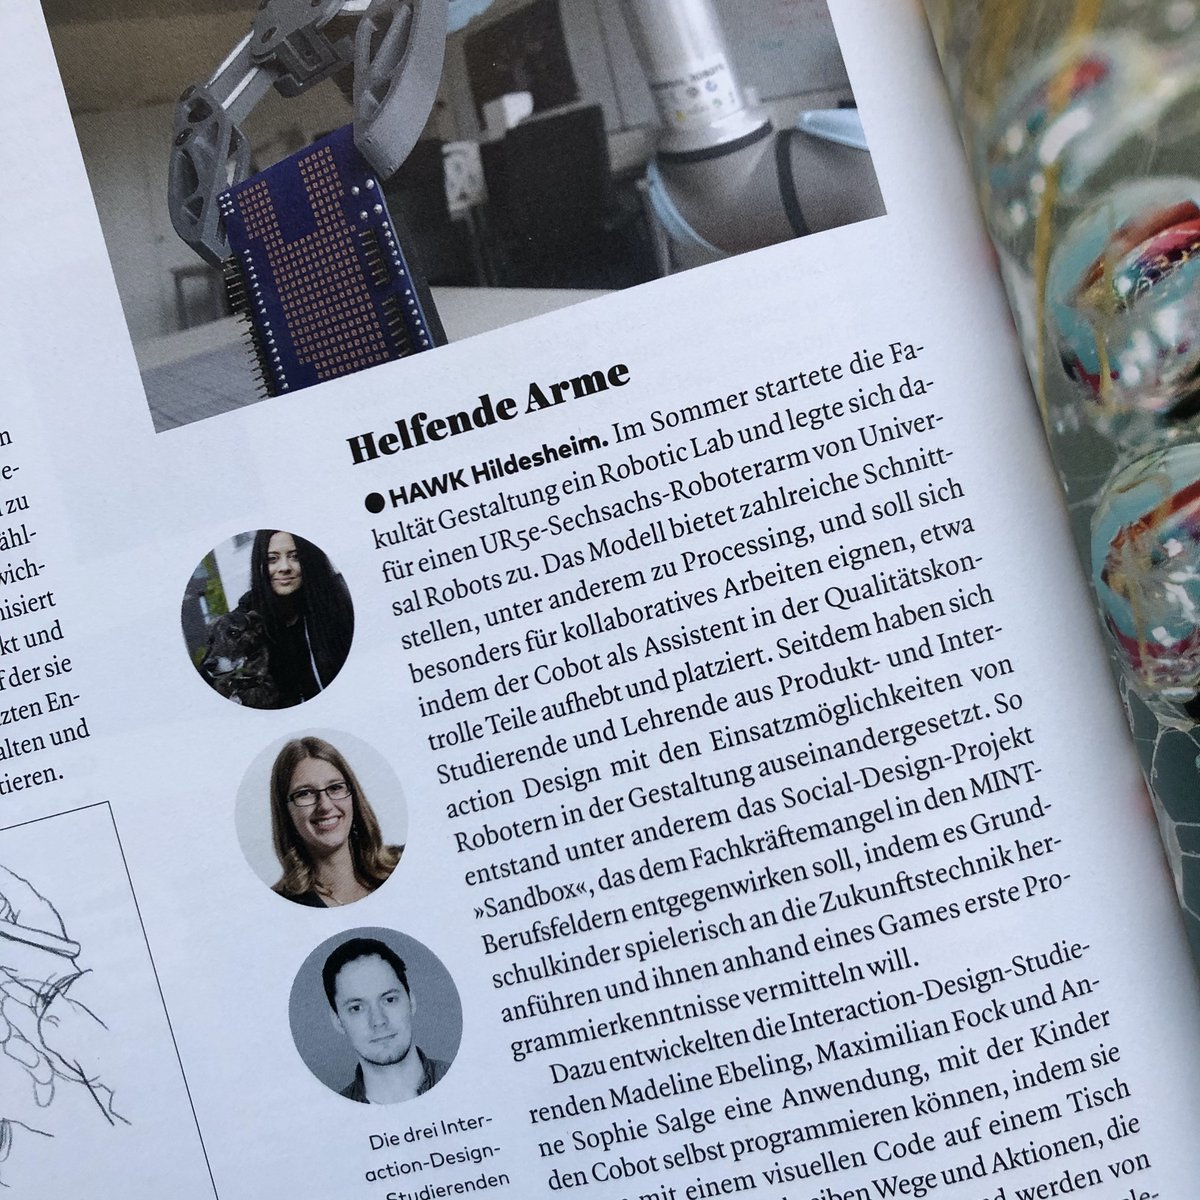 Nice one! Die aktuelle PAGE @pageMag berichtet über unser neues Robotic Lab und den Cobot, den Madeline, Anne und Max entwickelt haben.   #HIIxD #DesignEducation  #IxD #InteractionDesign #PhysicalComputing #Educationpic.twitter.com/SXs7PqQutr